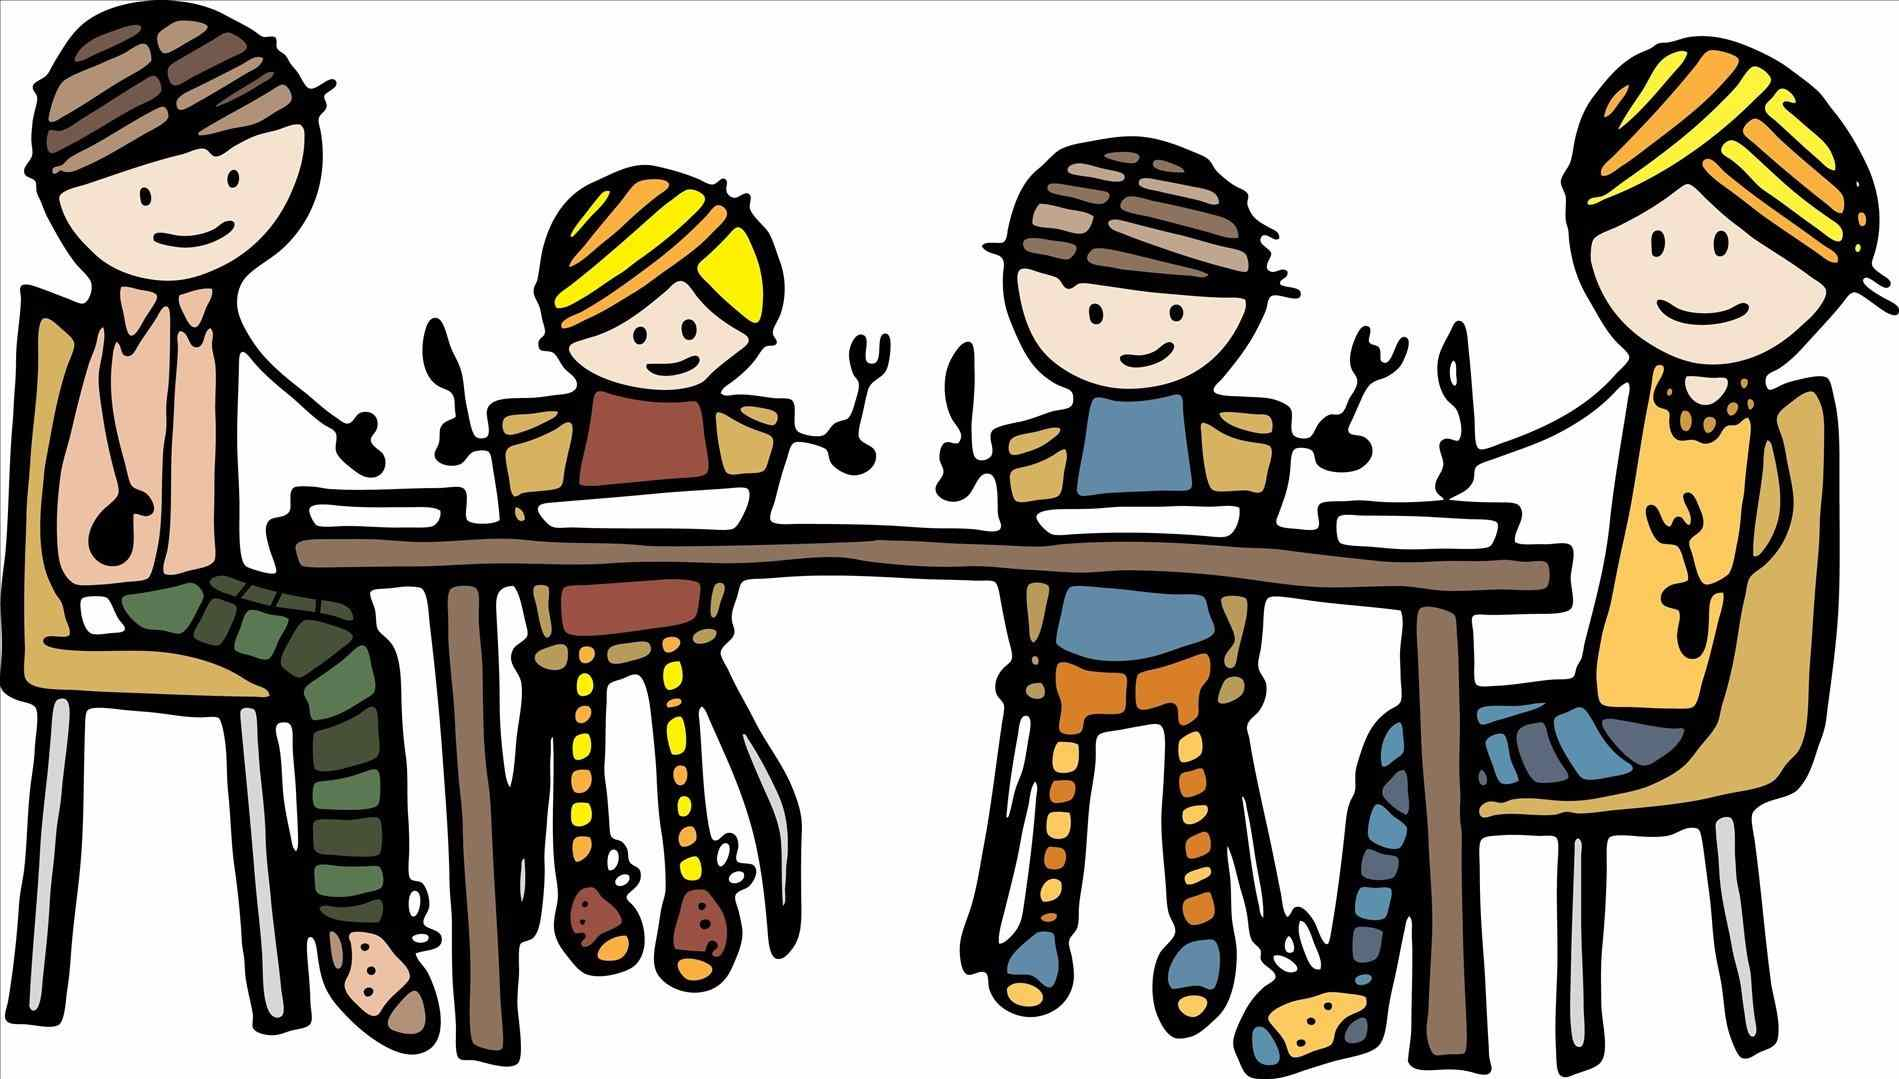 1899x1079 Picnic Family Meals Clipart S Free Download Clip Art Chicken